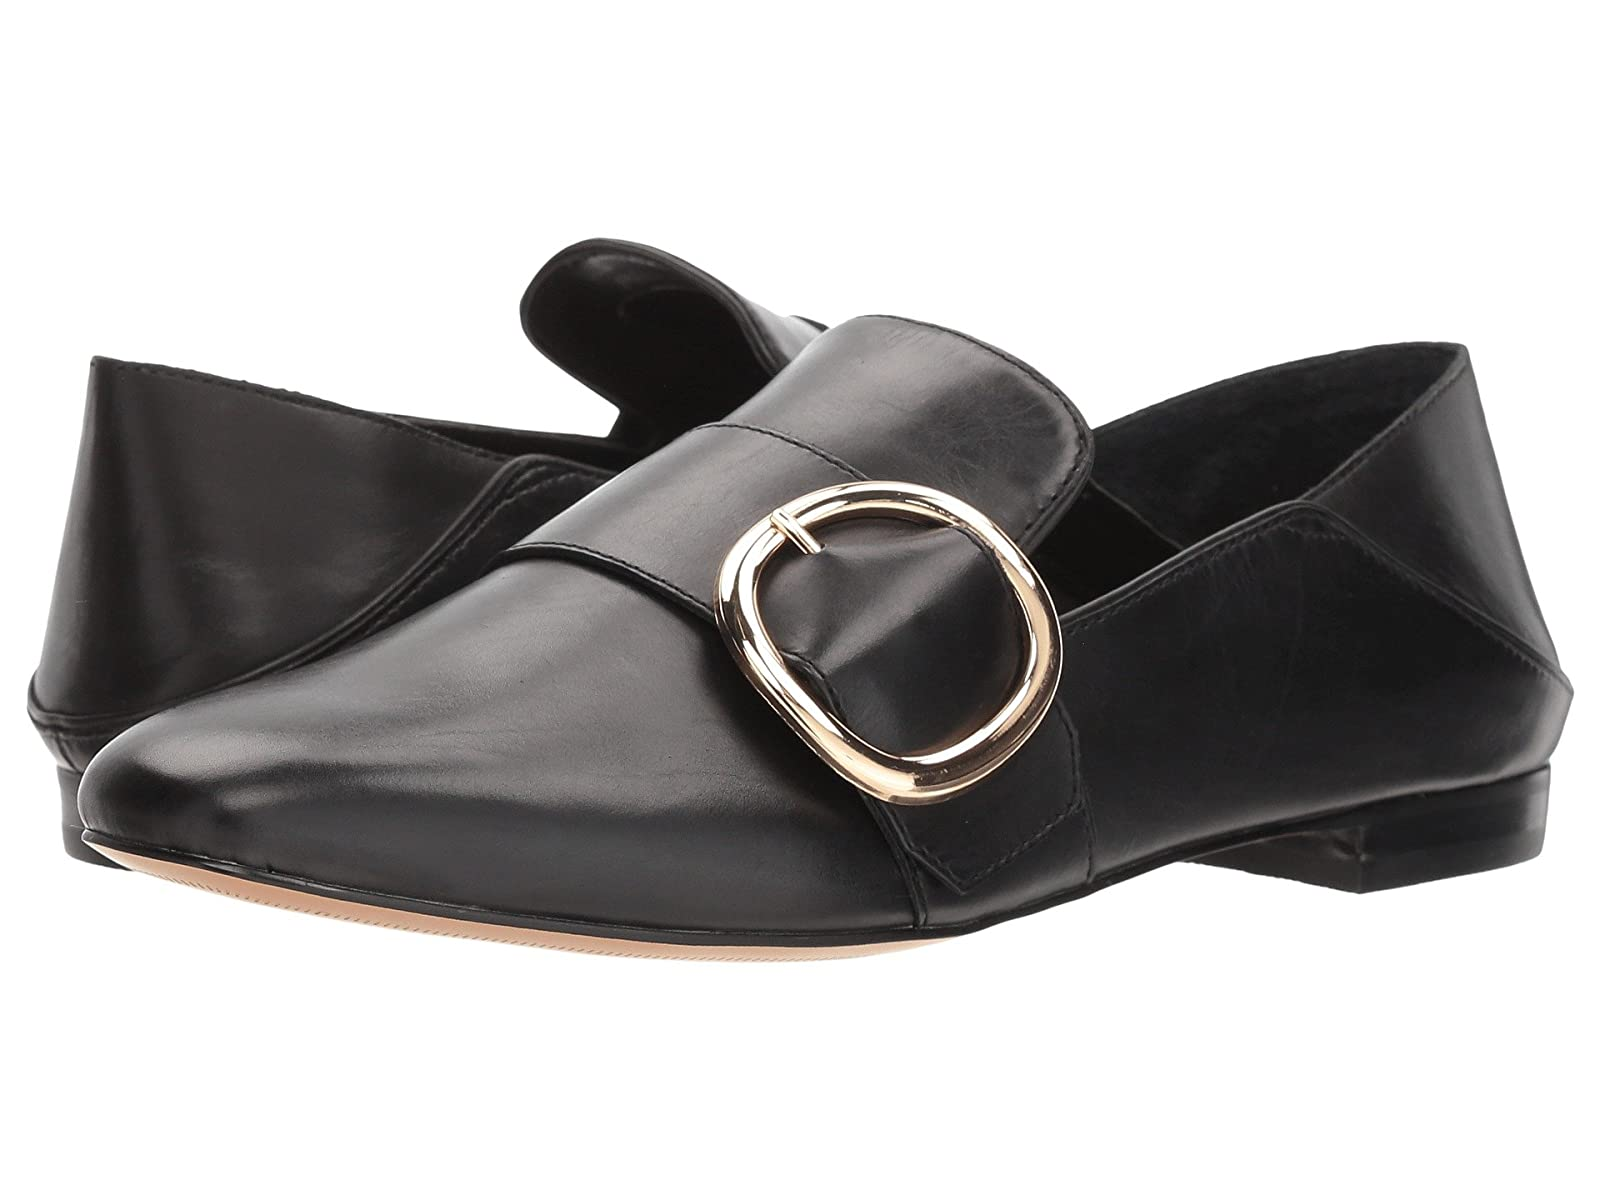 Steven AviCheap and distinctive eye-catching shoes